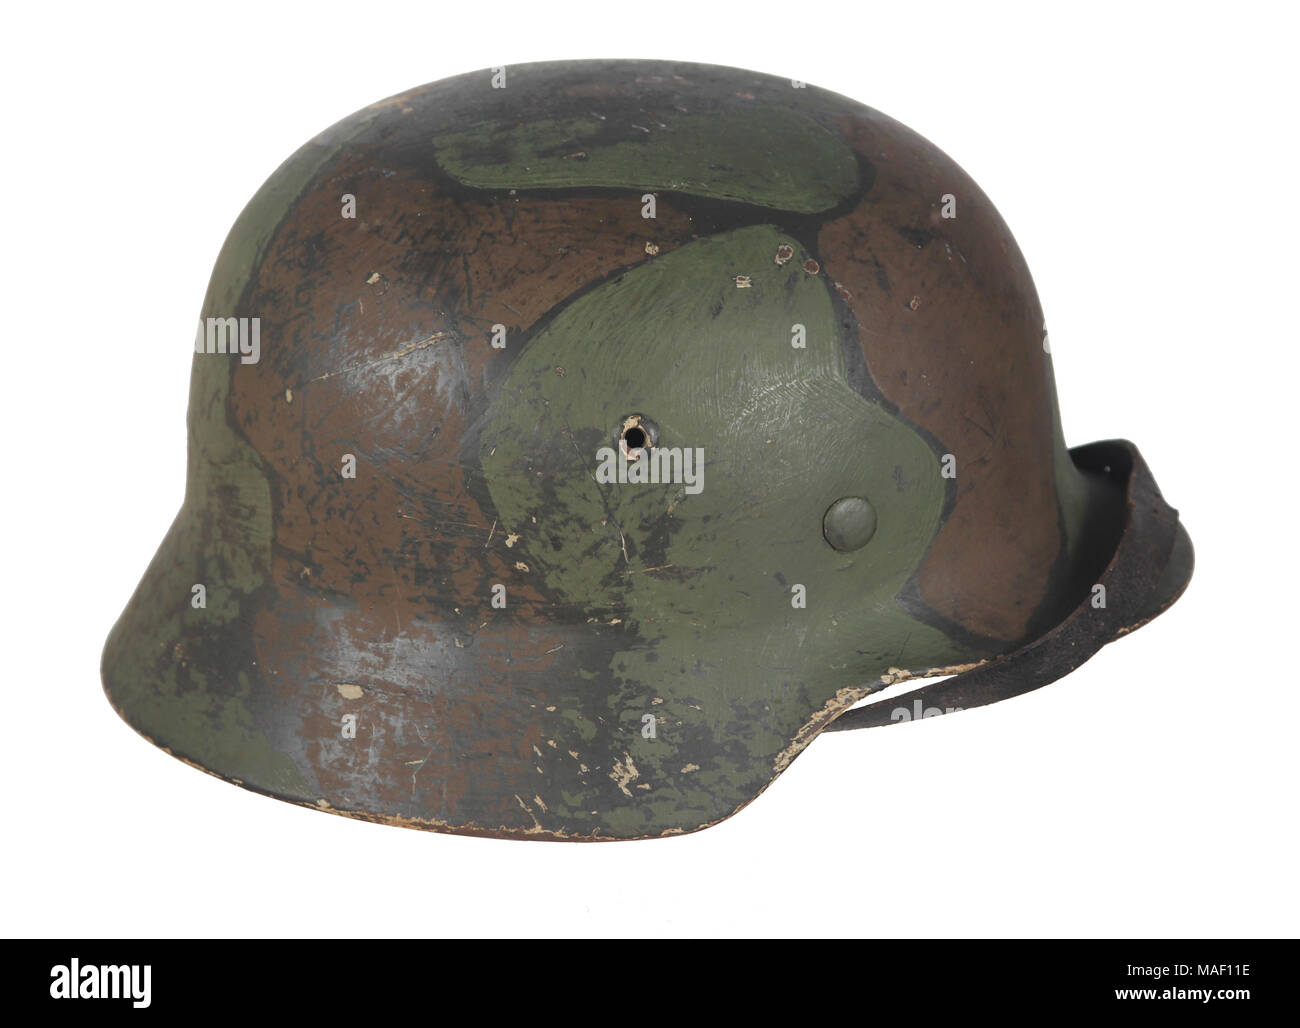 World War 2 German M35 Camouflage Painted Helmet Found In Norway The Summer Is Over A Winter White Coat Of Paint